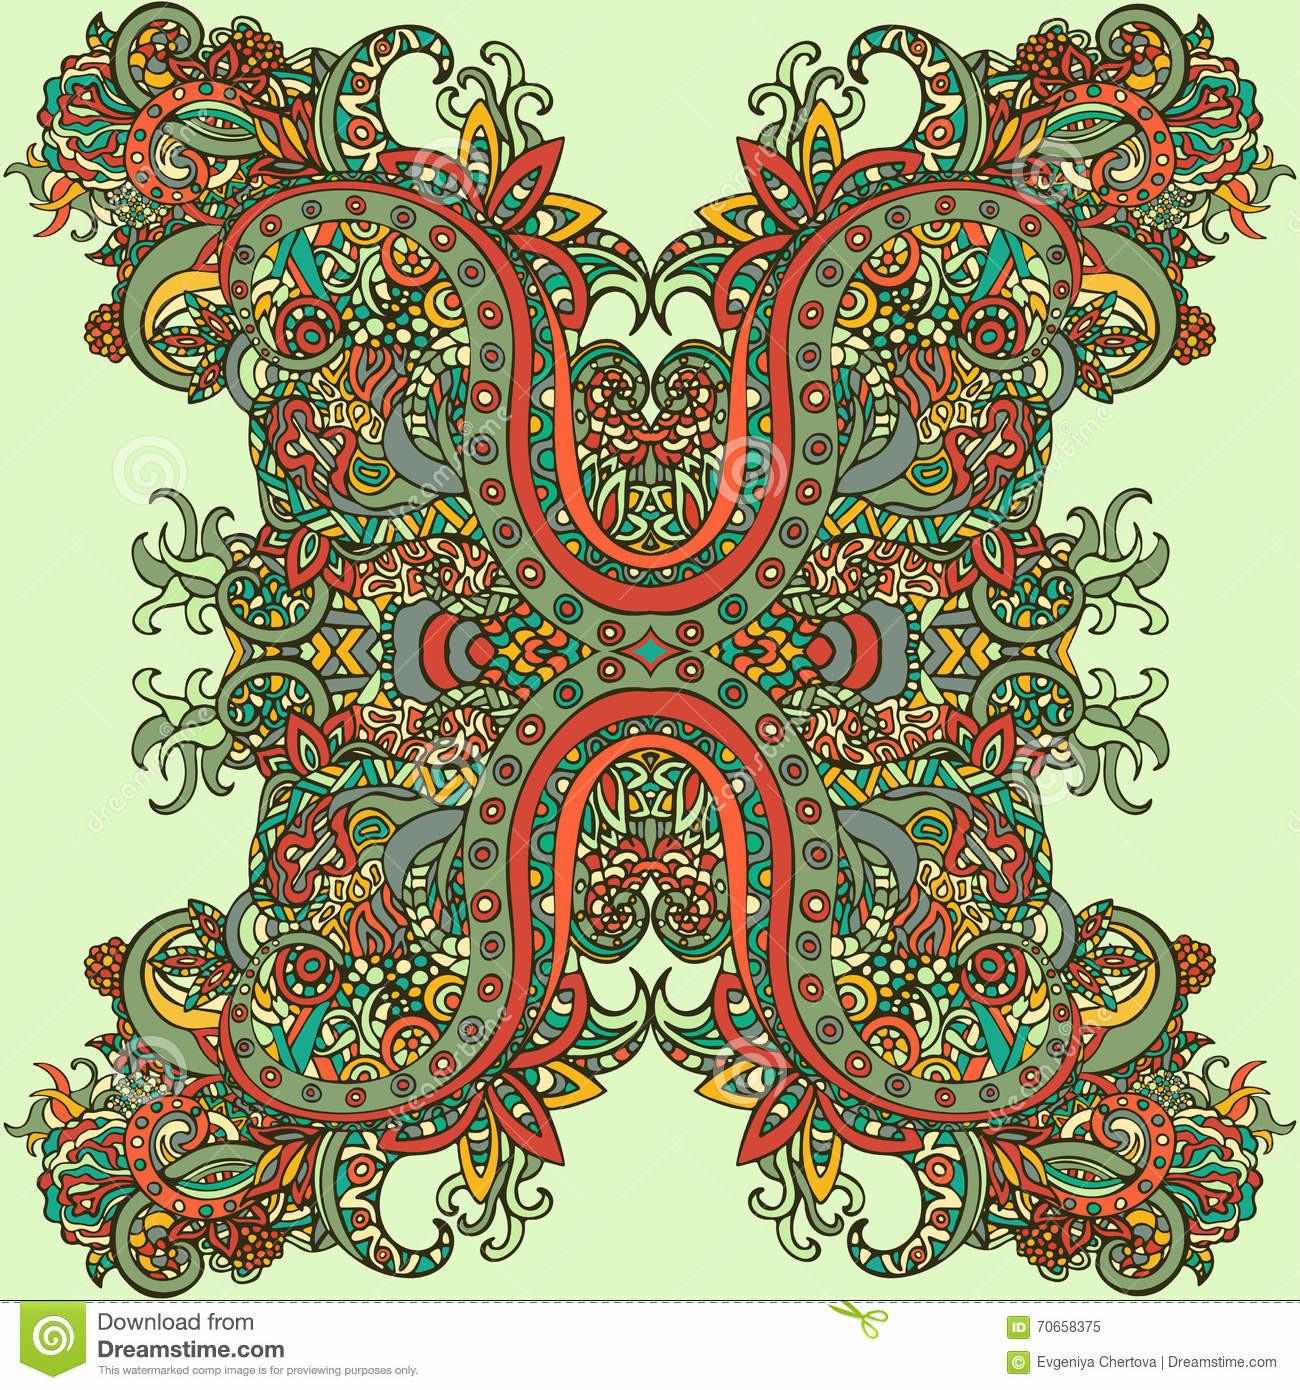 Boho Style Ethnic Ornament Abstract Floral Plant Natural